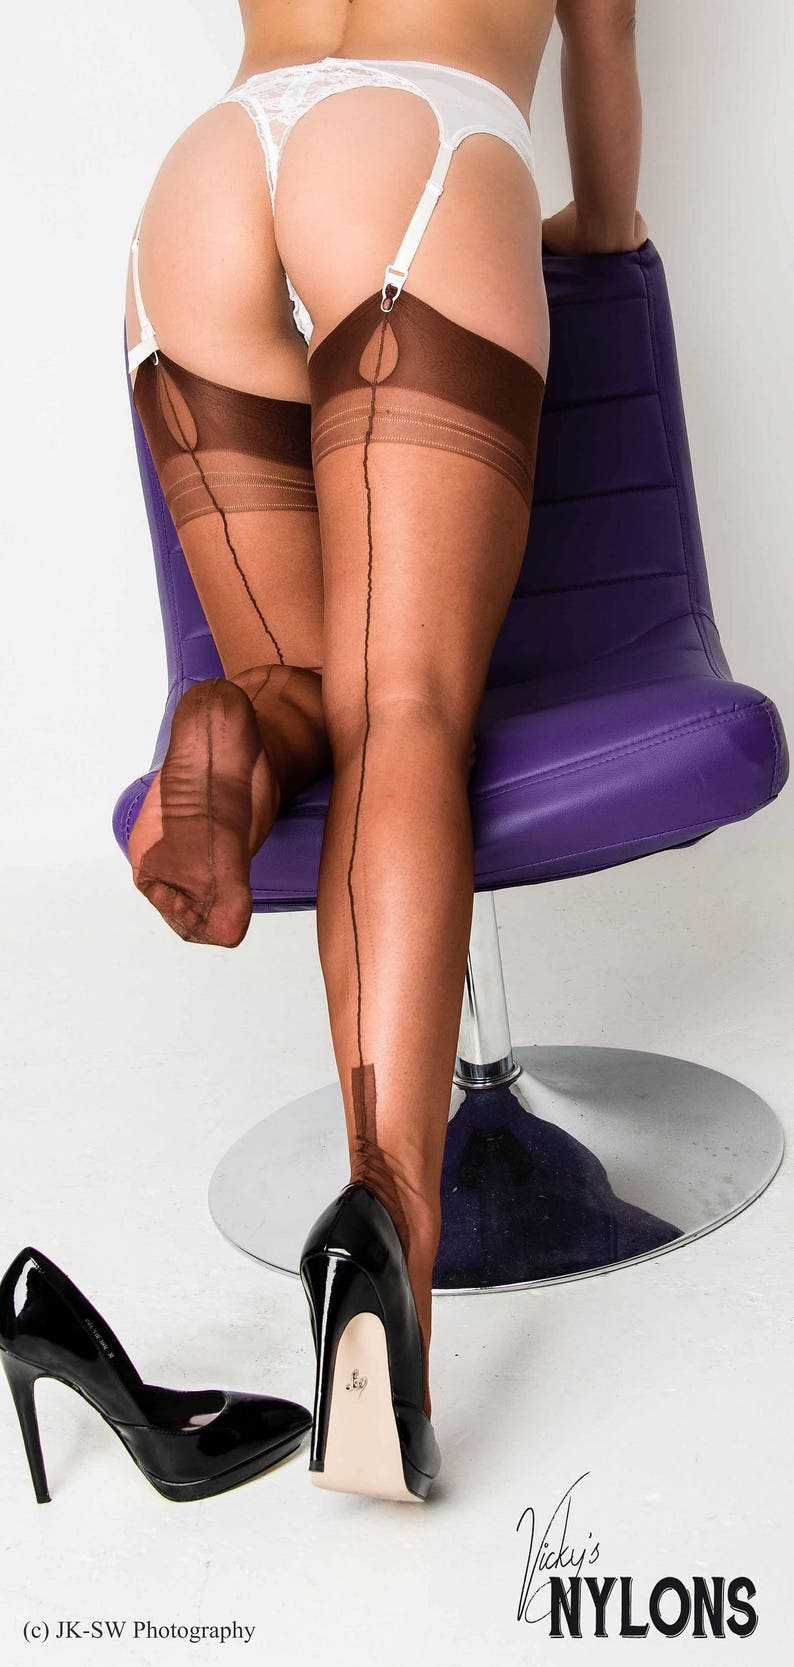 b74eef398fa Garter Seamed Nylon Stockings Seamed Nylons English real